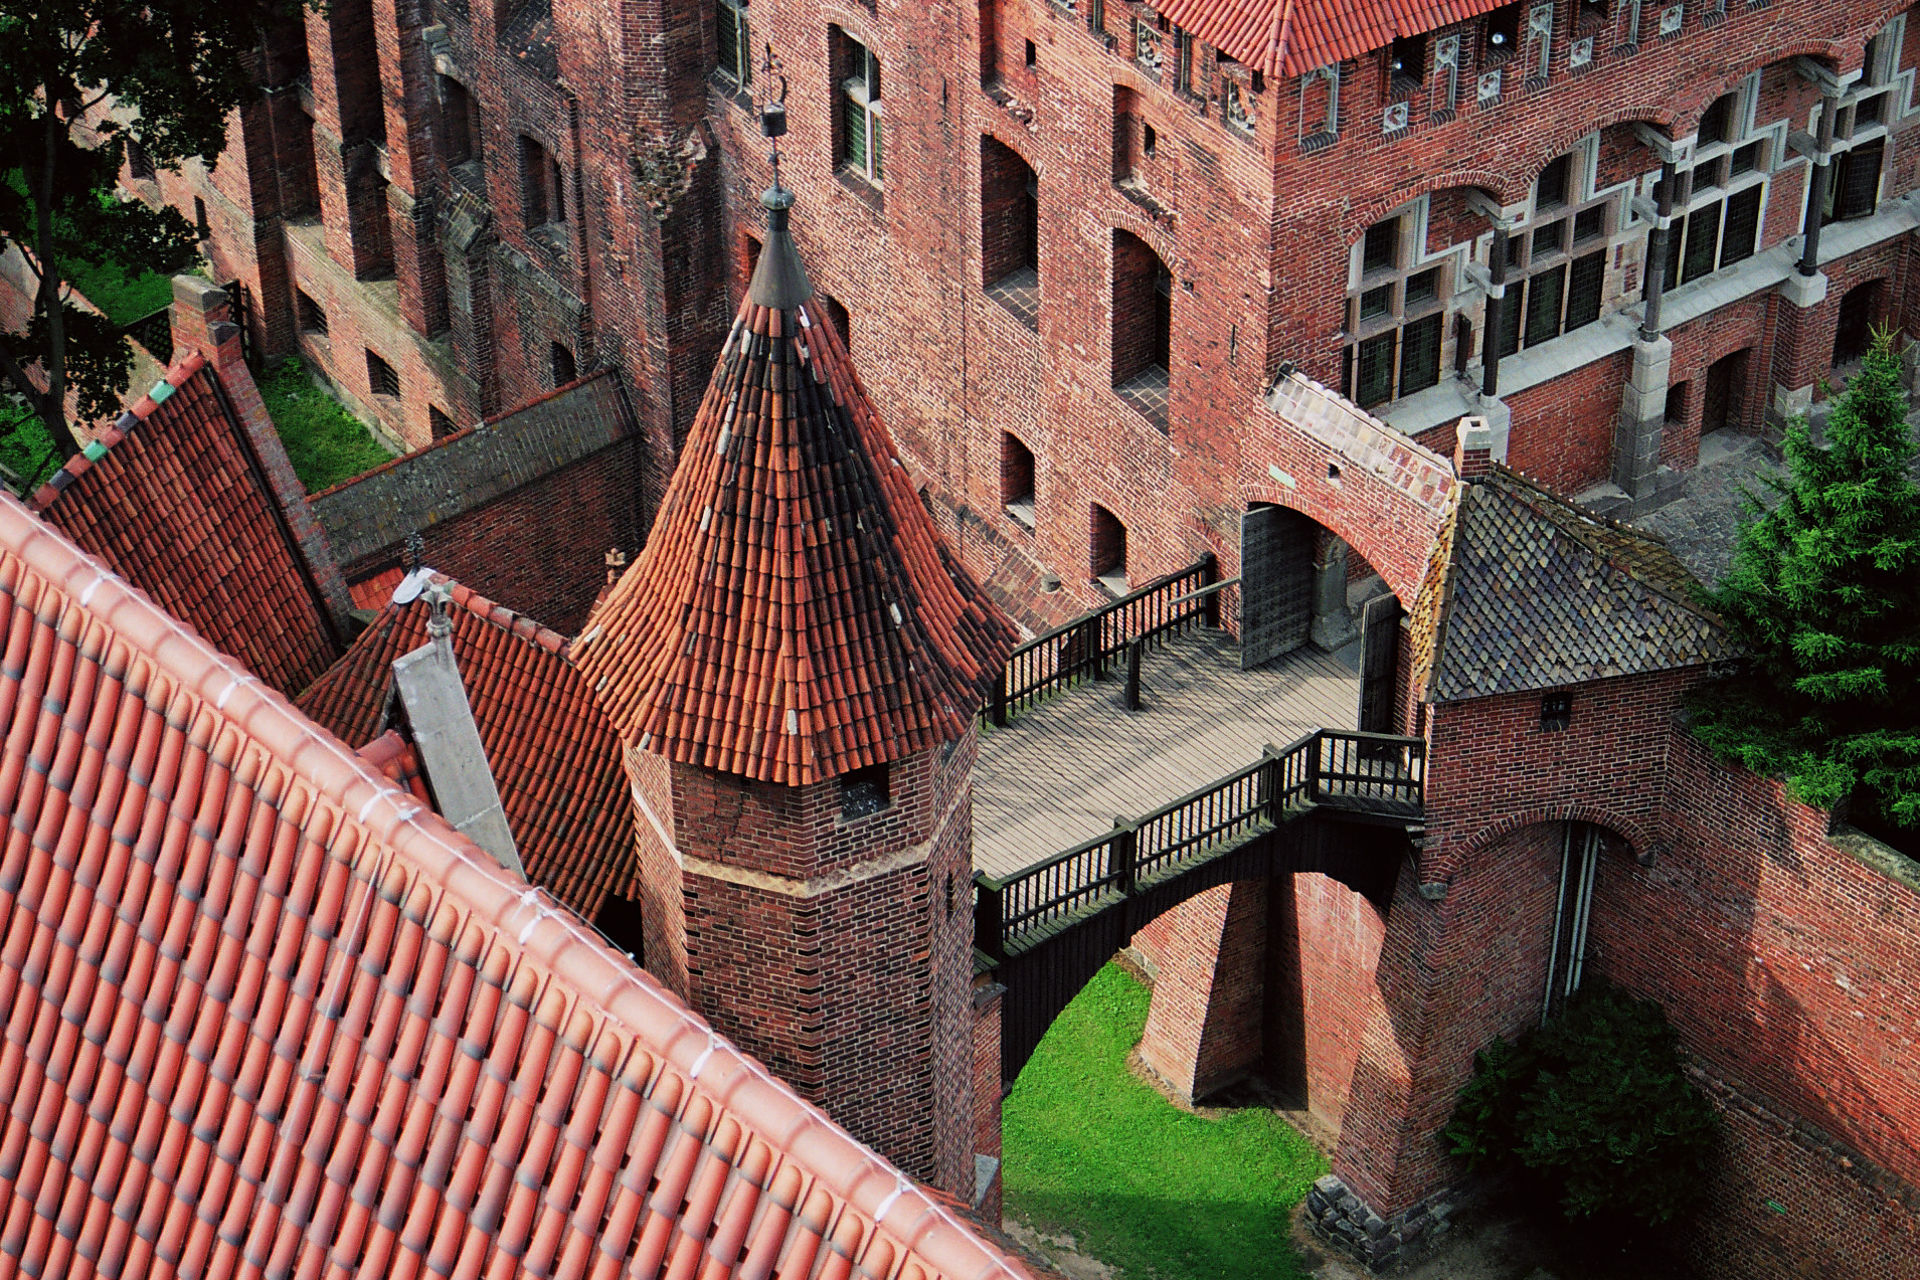 Malbork Castle. Photo credit: Pawe³ Windys via Free Images.